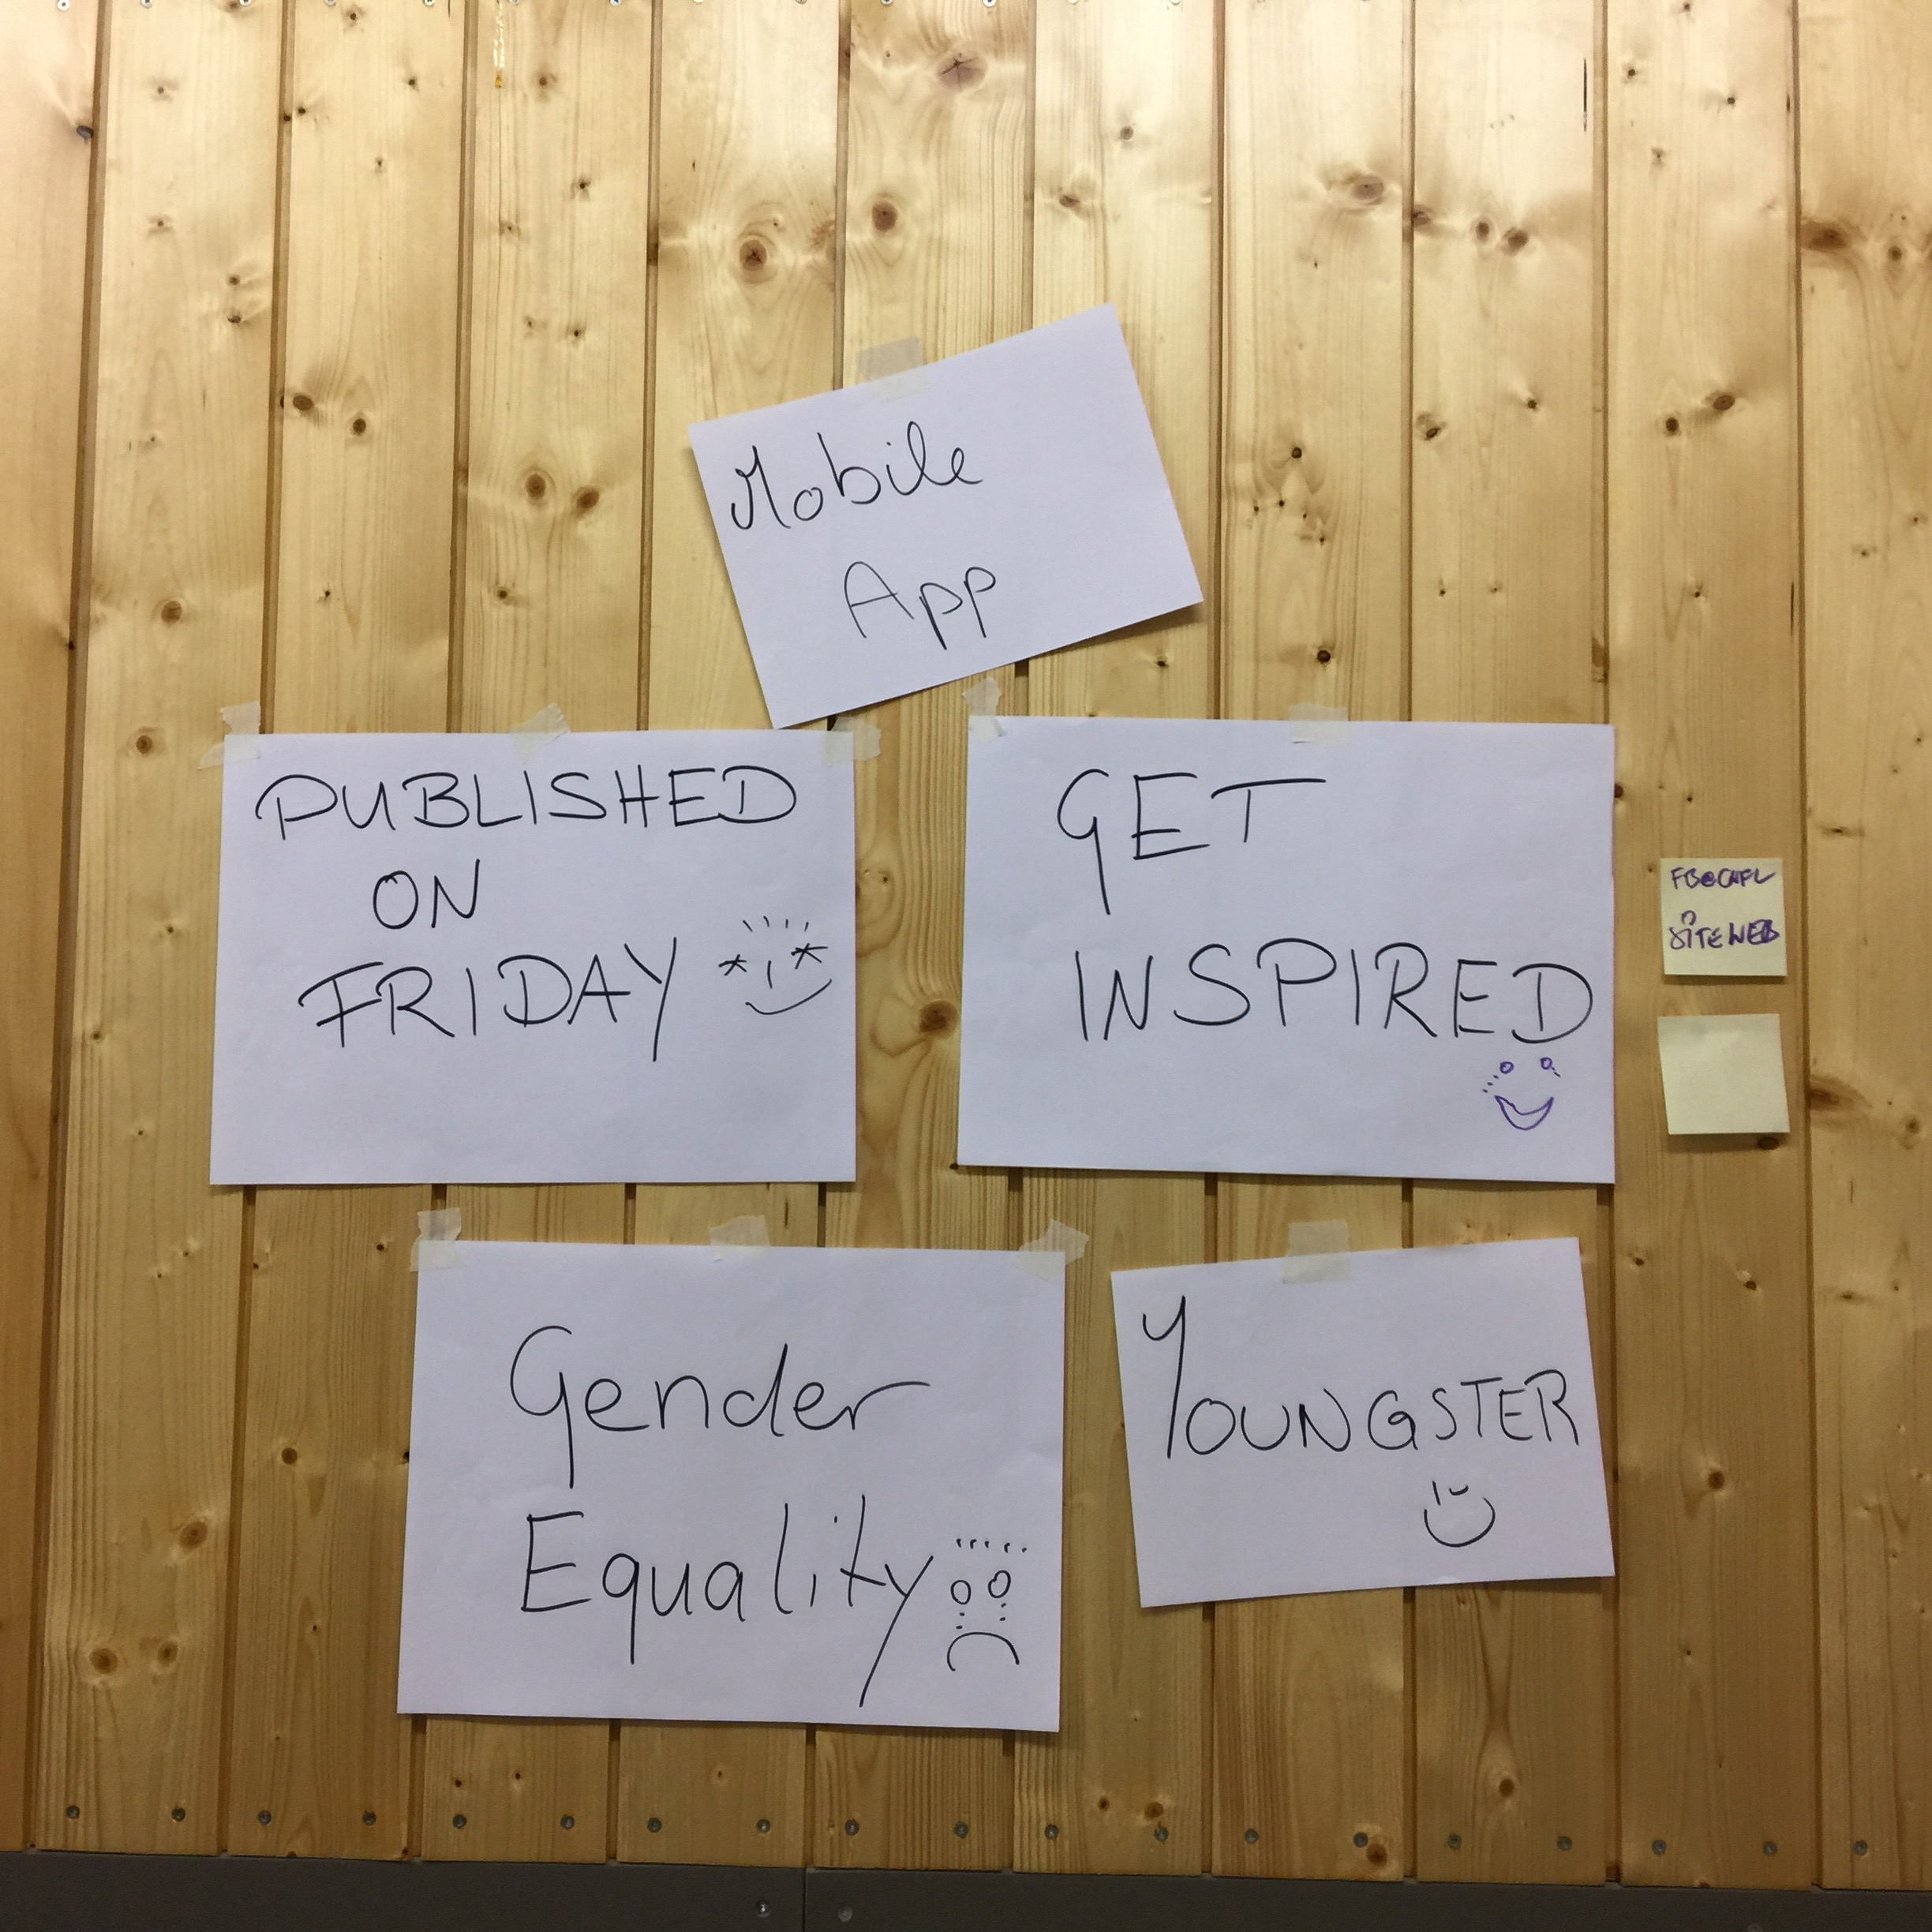 Image of post-its stuck to the wall, showing the project's main guidelines.